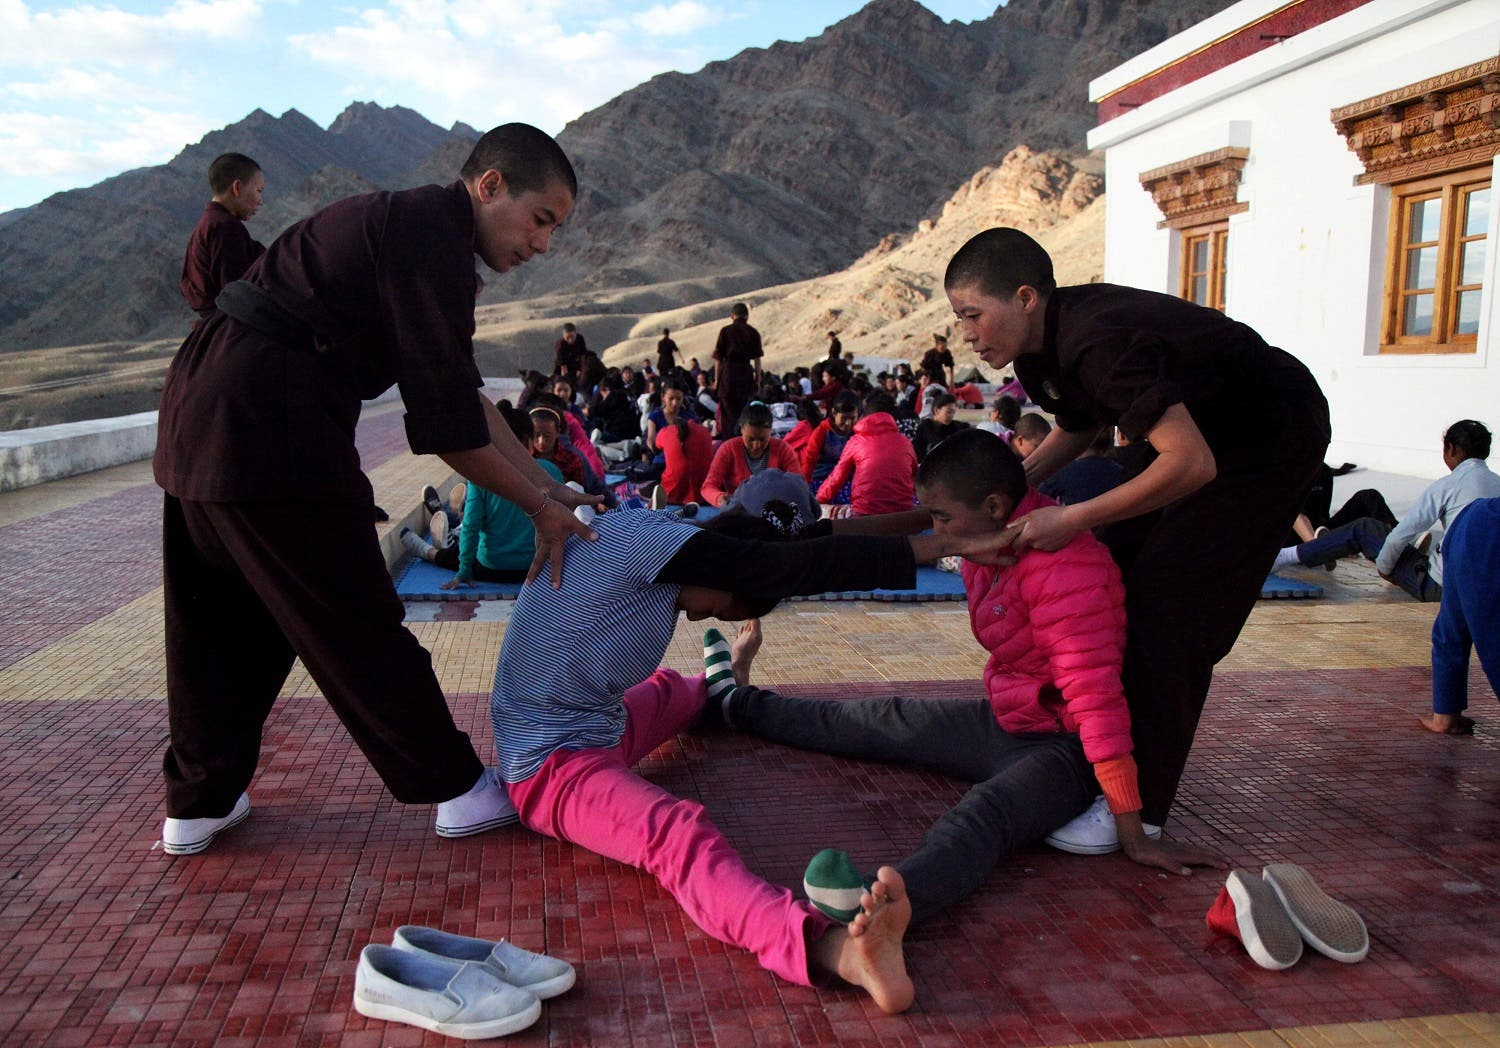 Buddhist nuns help participants stretch during a five-day workshop teaching young women the martial art of Kung Fu, in Hemis region in Ladakh, August 18, 2017. (Reuters)